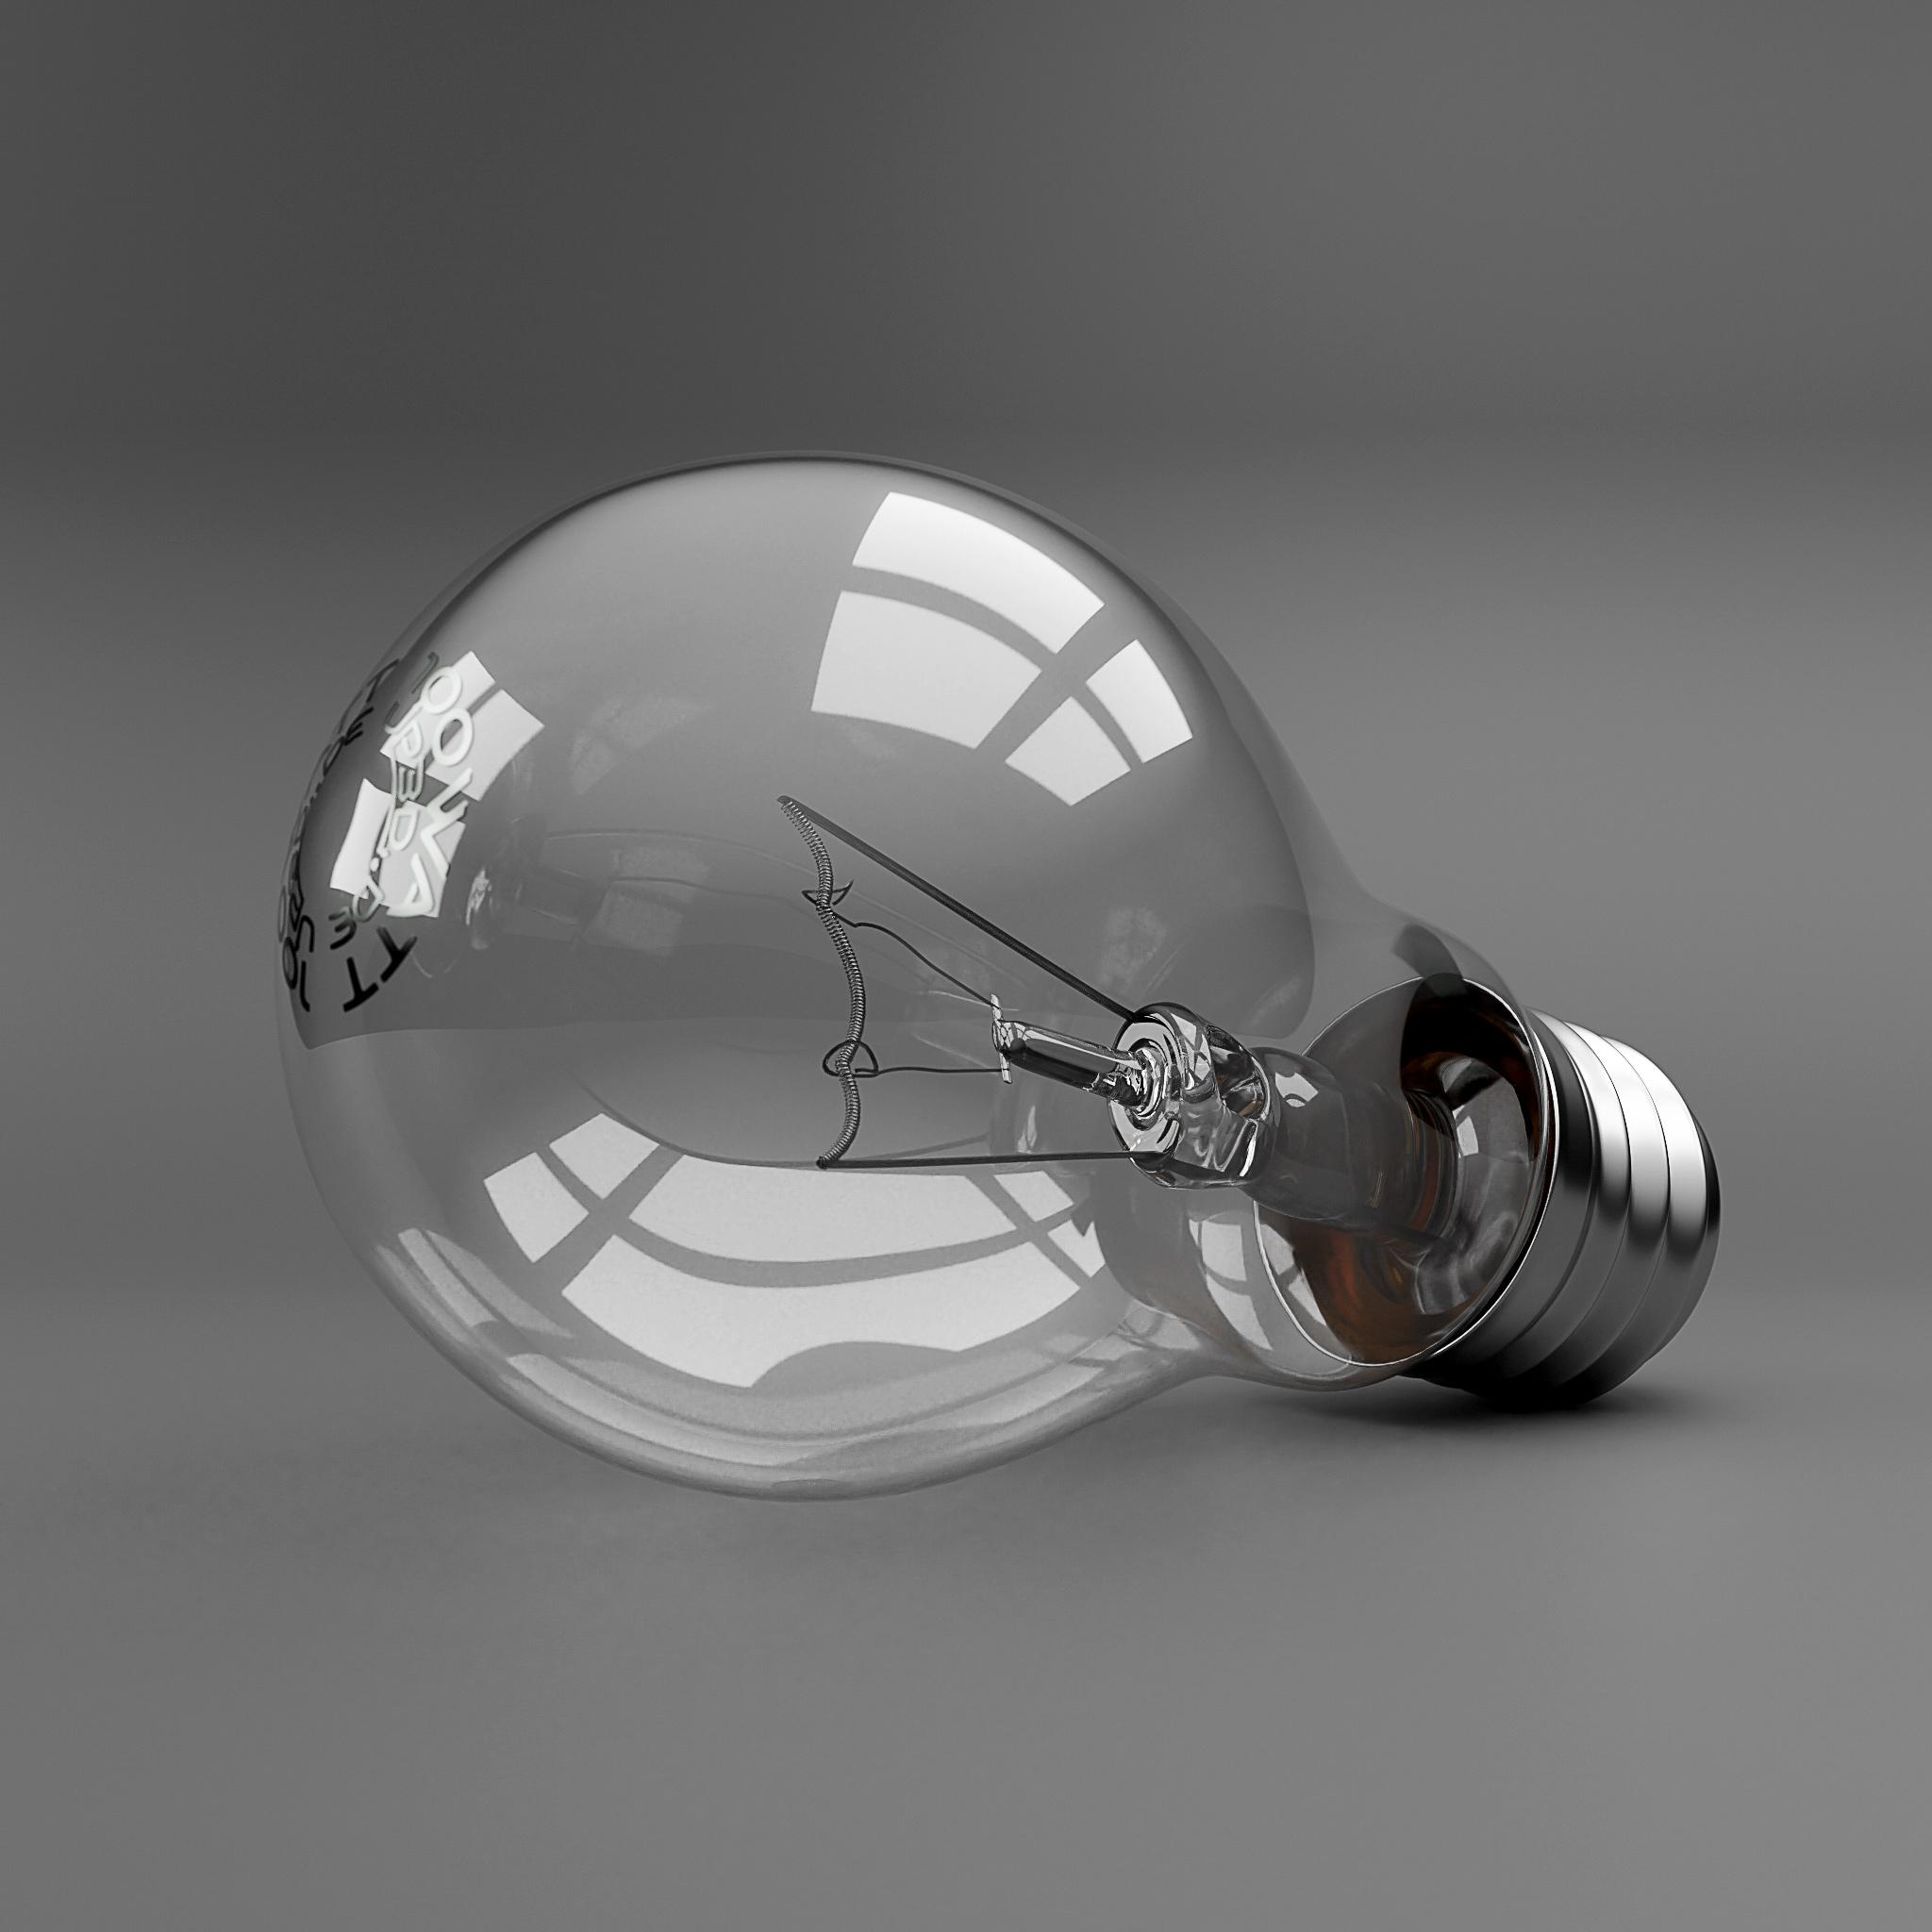 Light bulb preview image 1